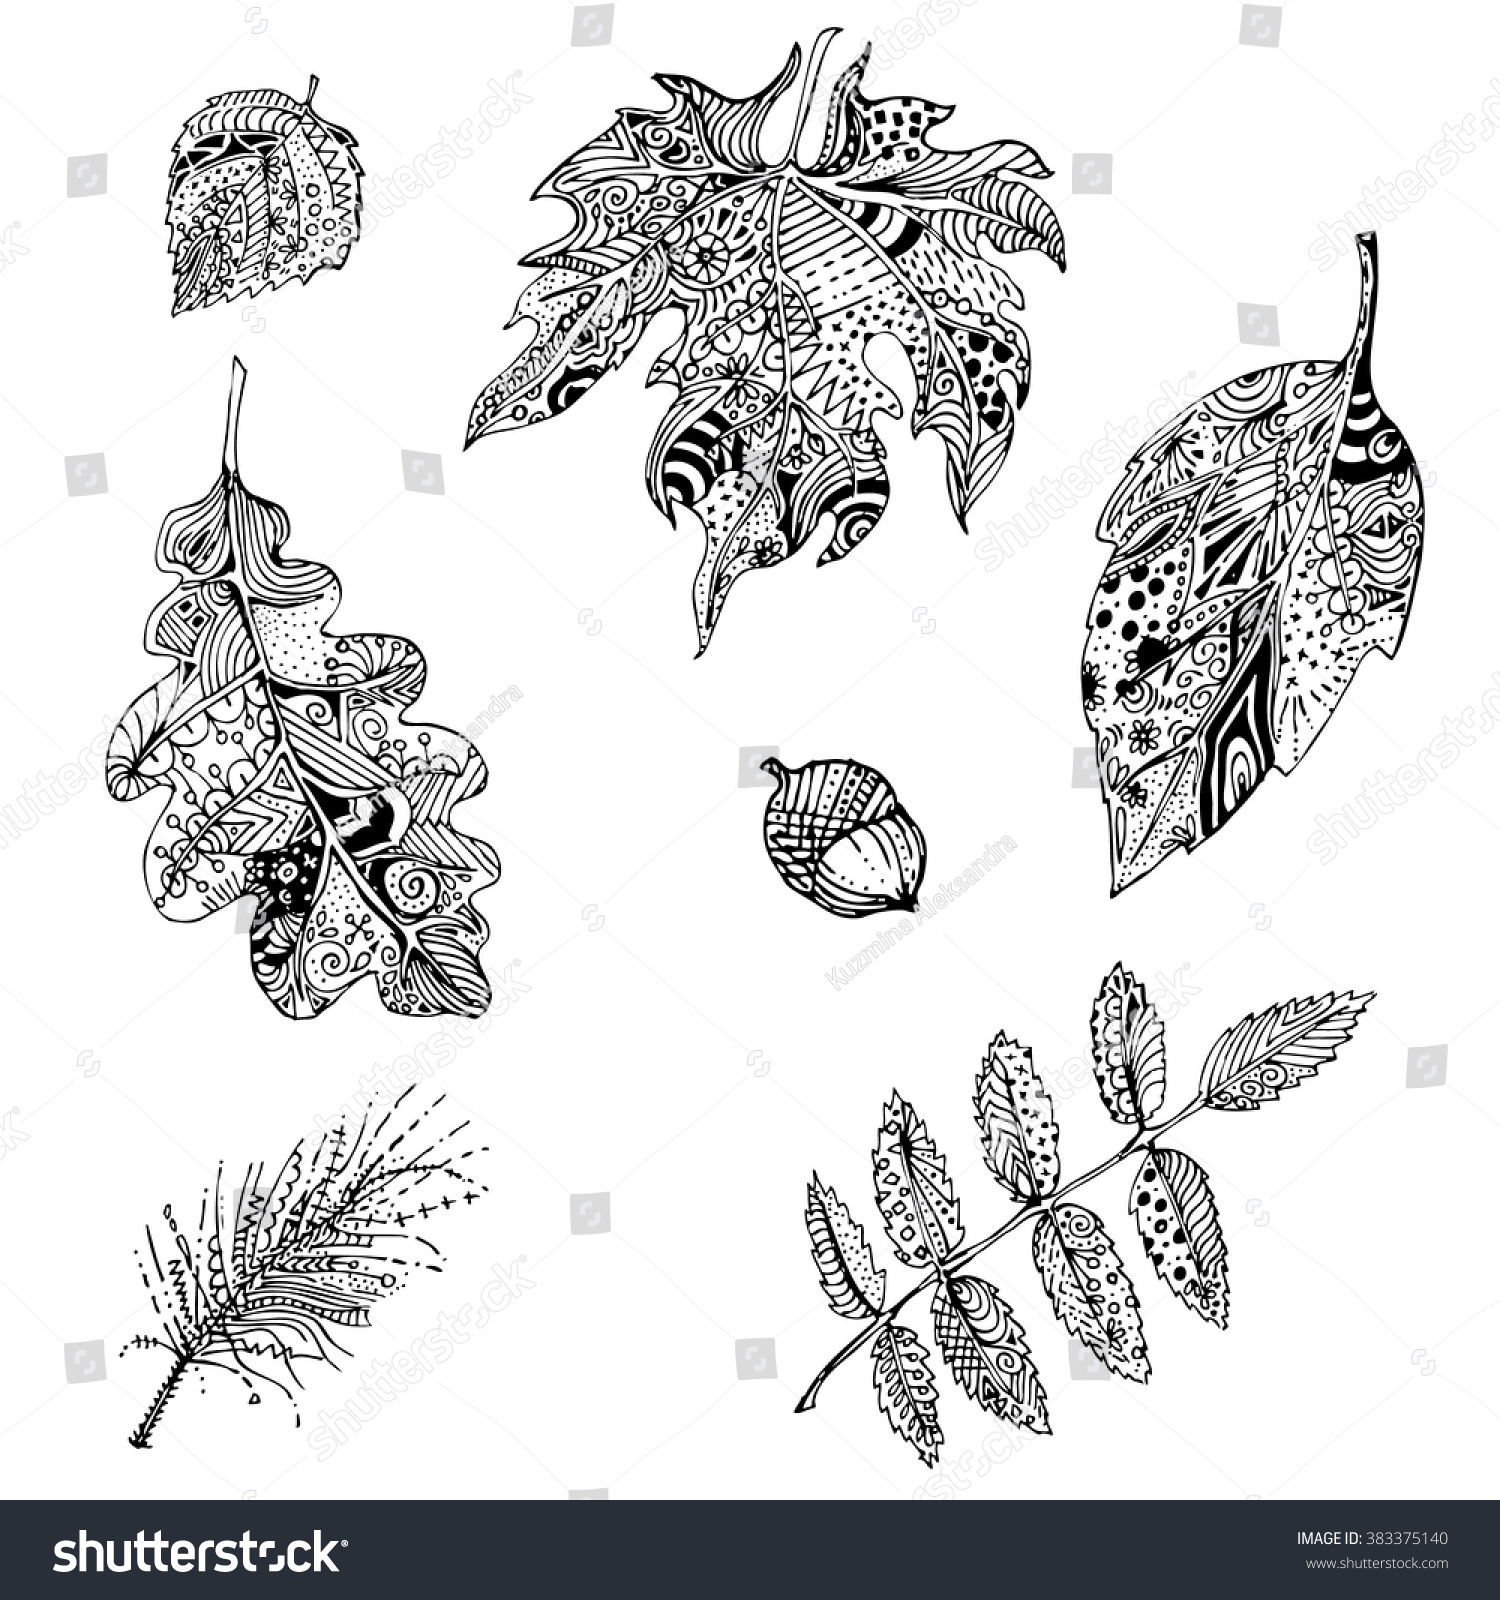 Hand Drawn Black White Doodle Leaves Of Mountain Ash Oak Apple Tree Pine Branch Ethnic Patterned Vector Illustration Sketch For Adult Antistress